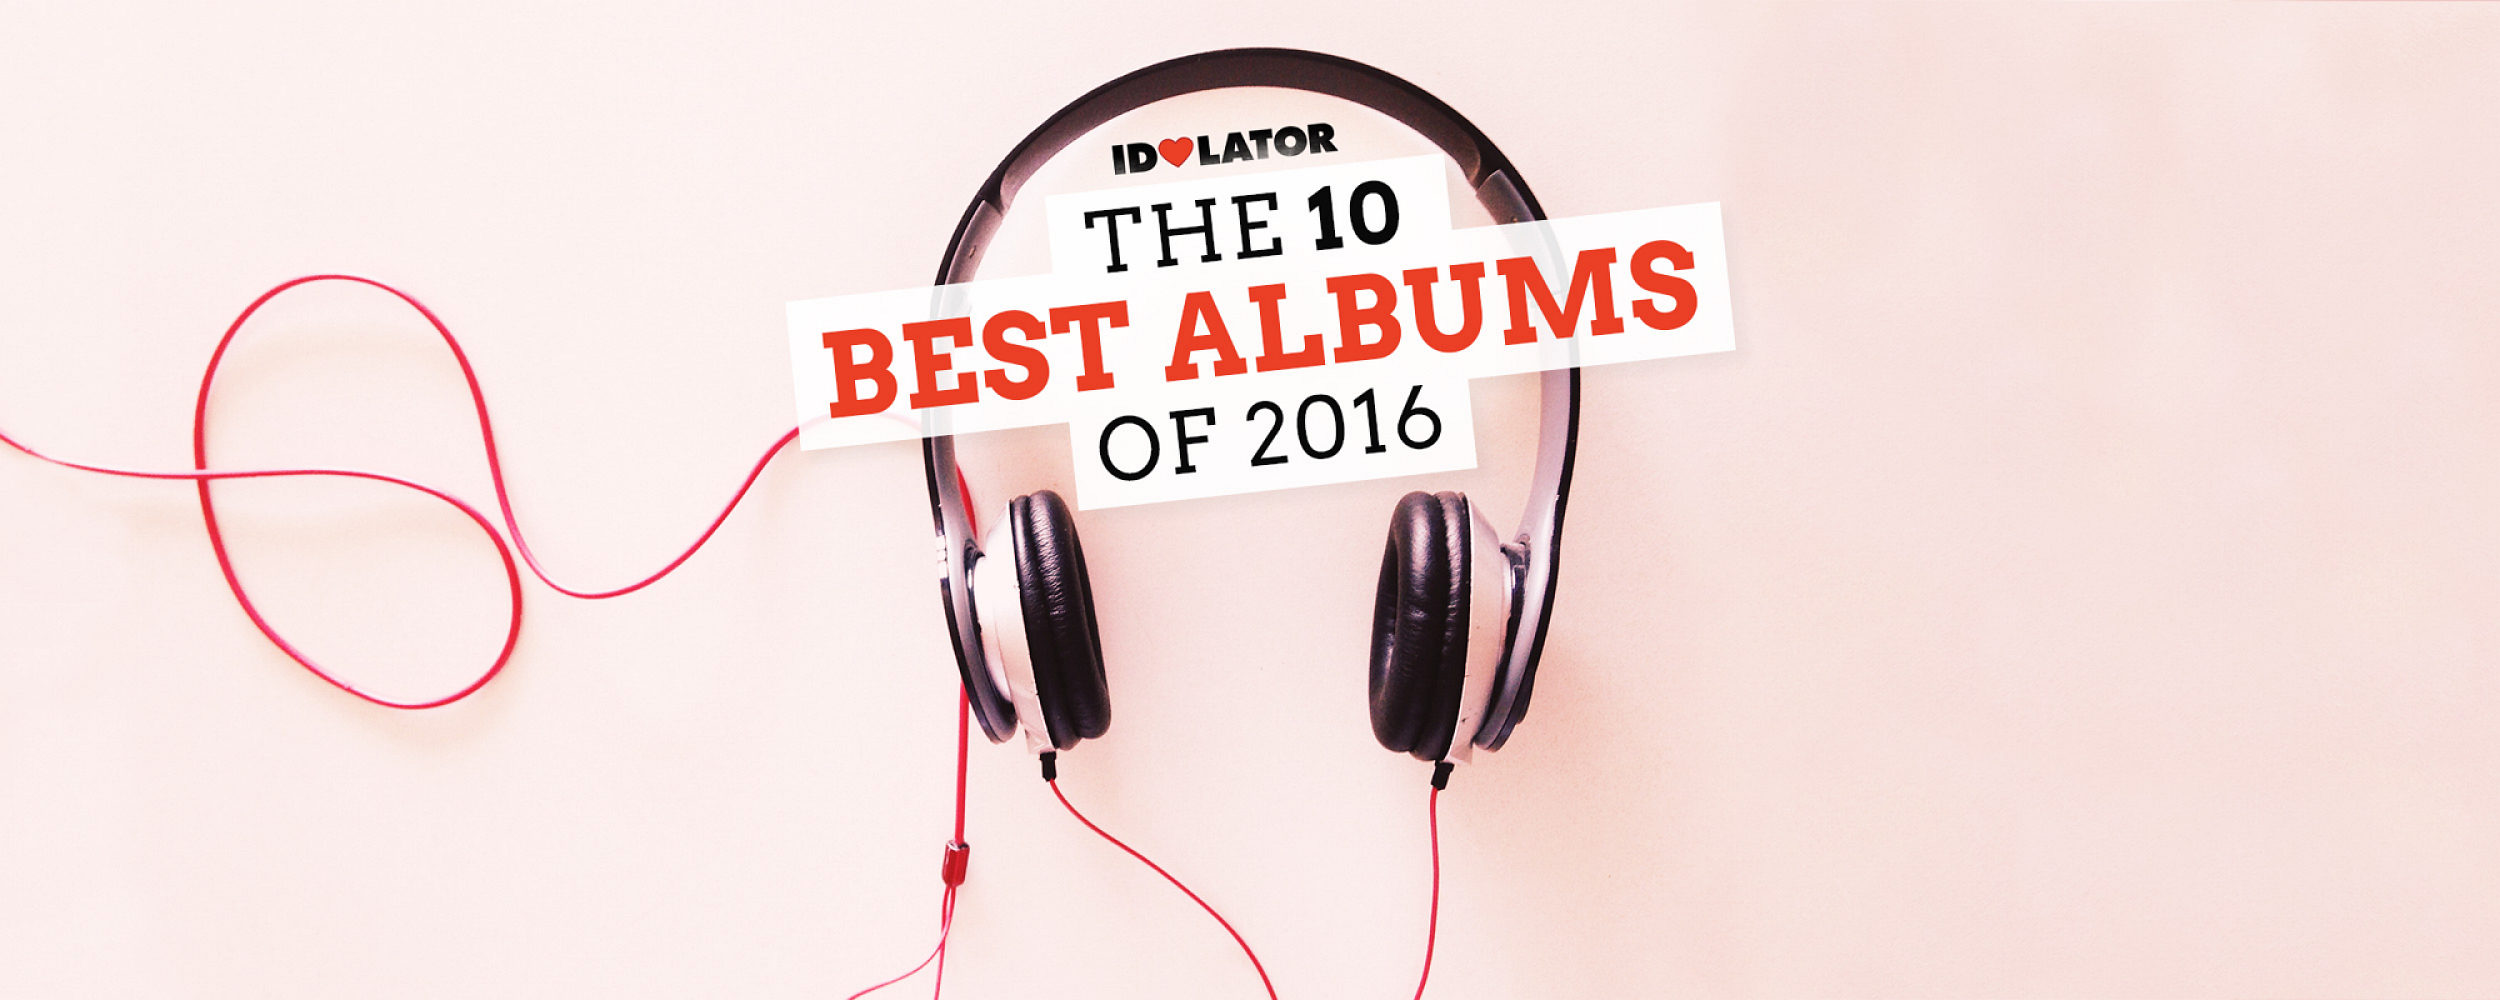 The 10 Best Albums Of 2016